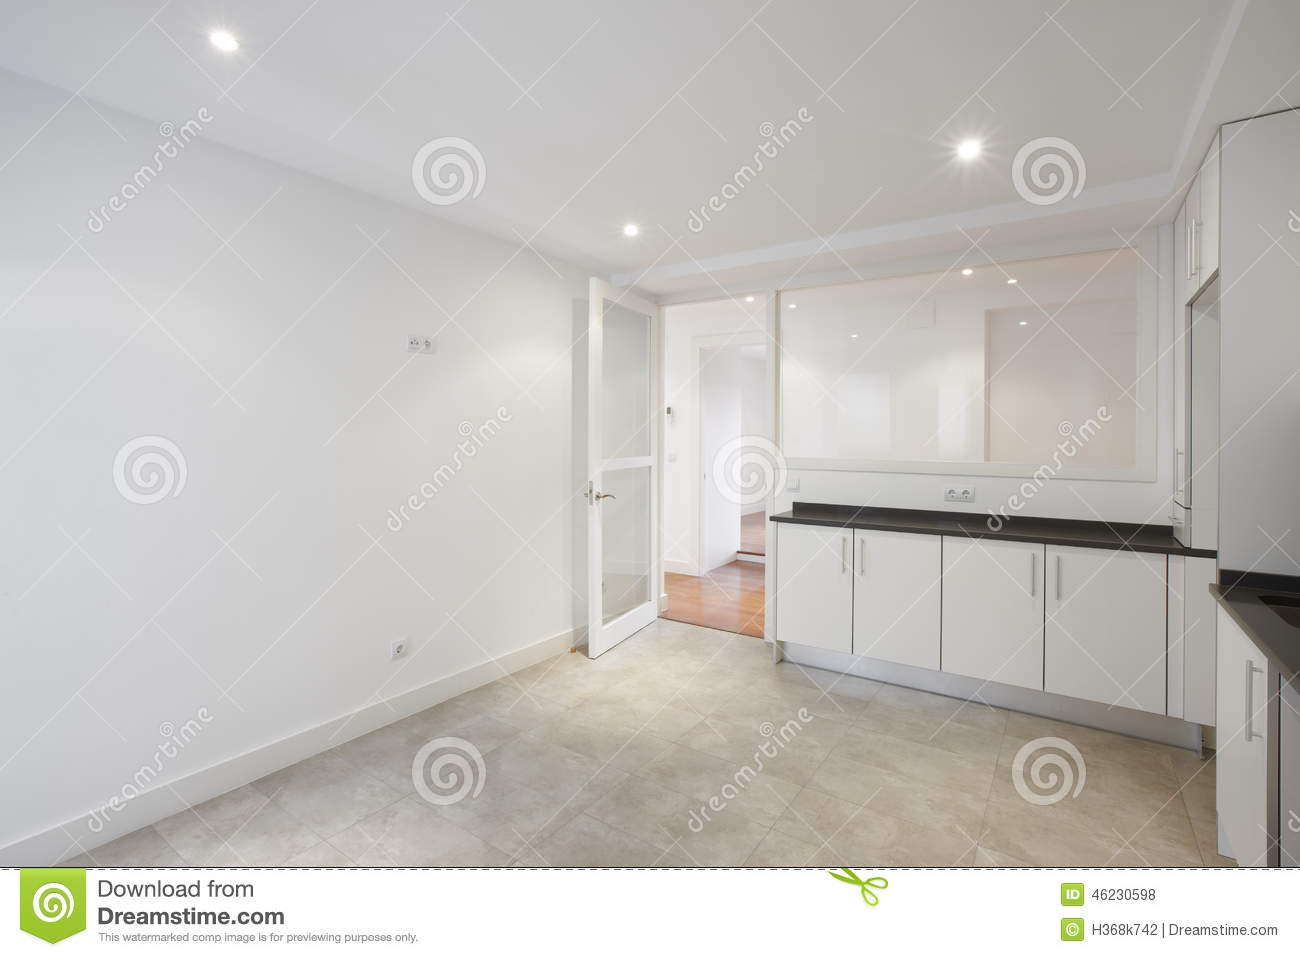 Empty House Kitchen With White Furniture Stock Photo - Image: 46230598